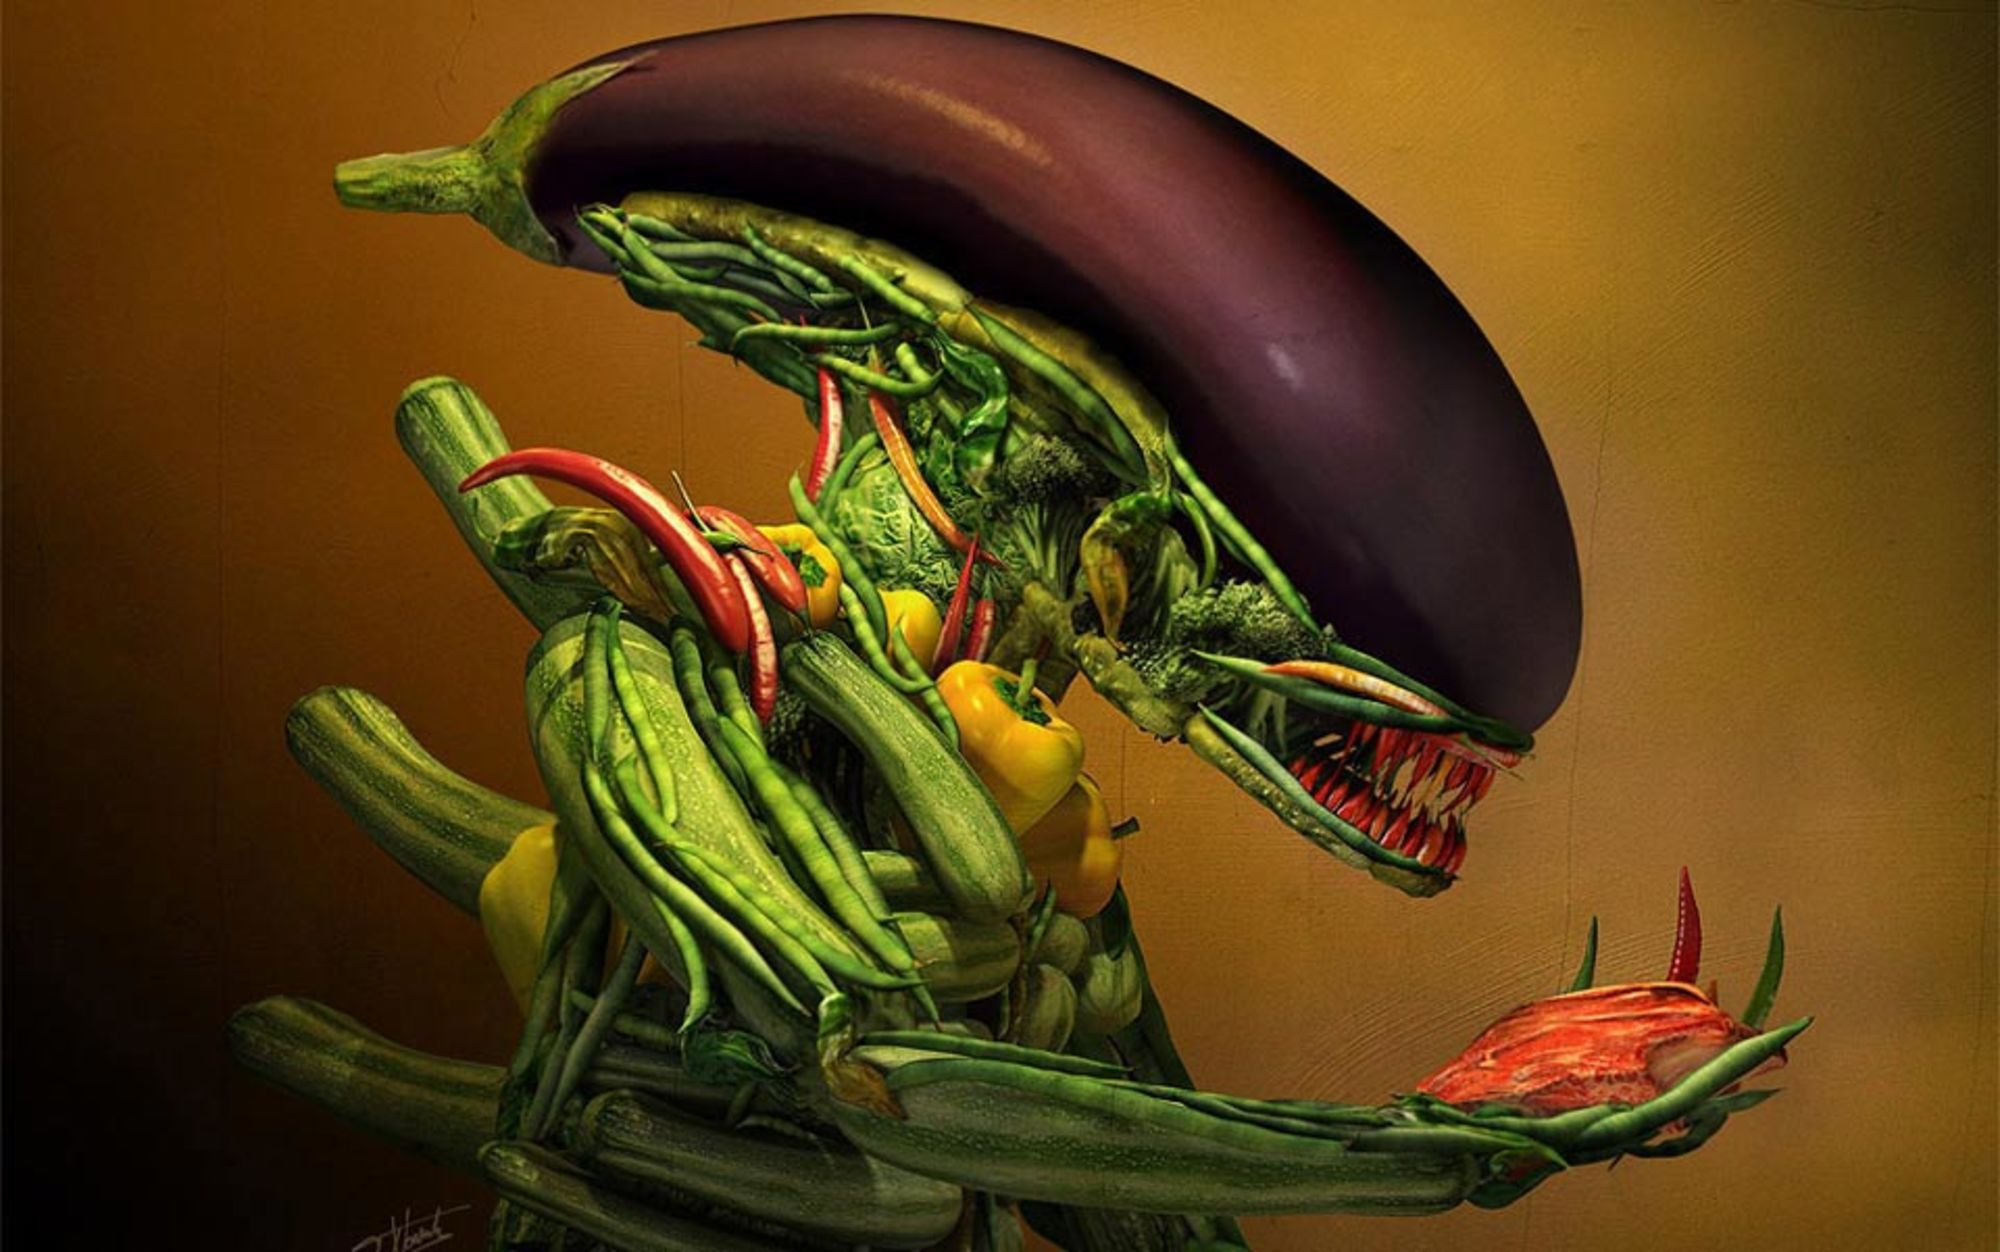 If aliens treated us like vegans treat animals, we'd be ...